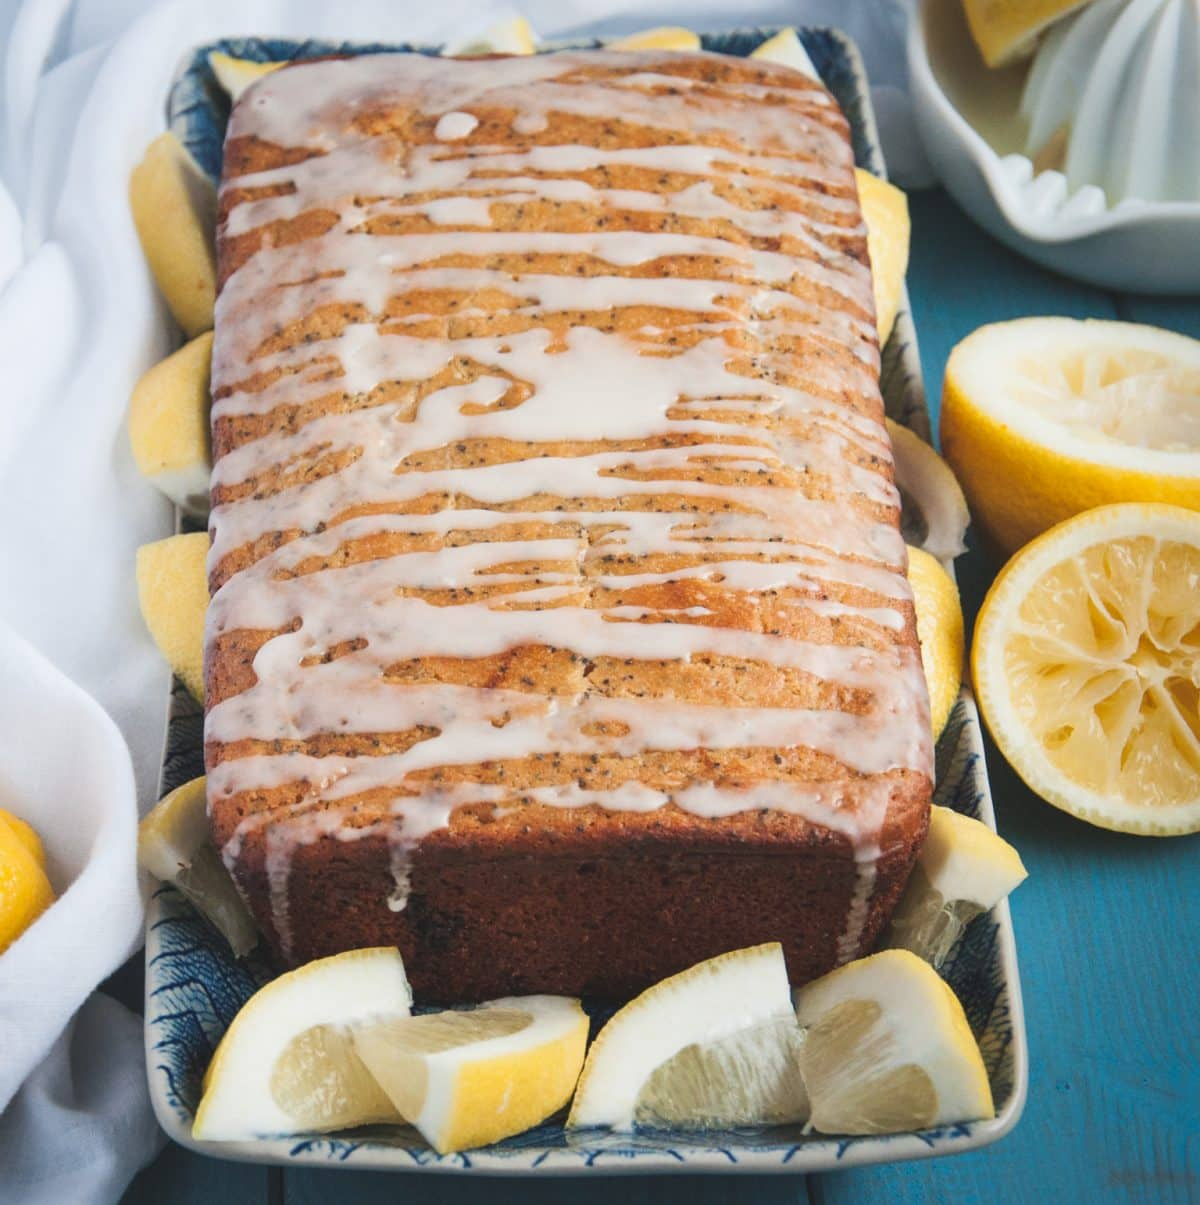 Whole wheat lemon poppy seed bread with glaze